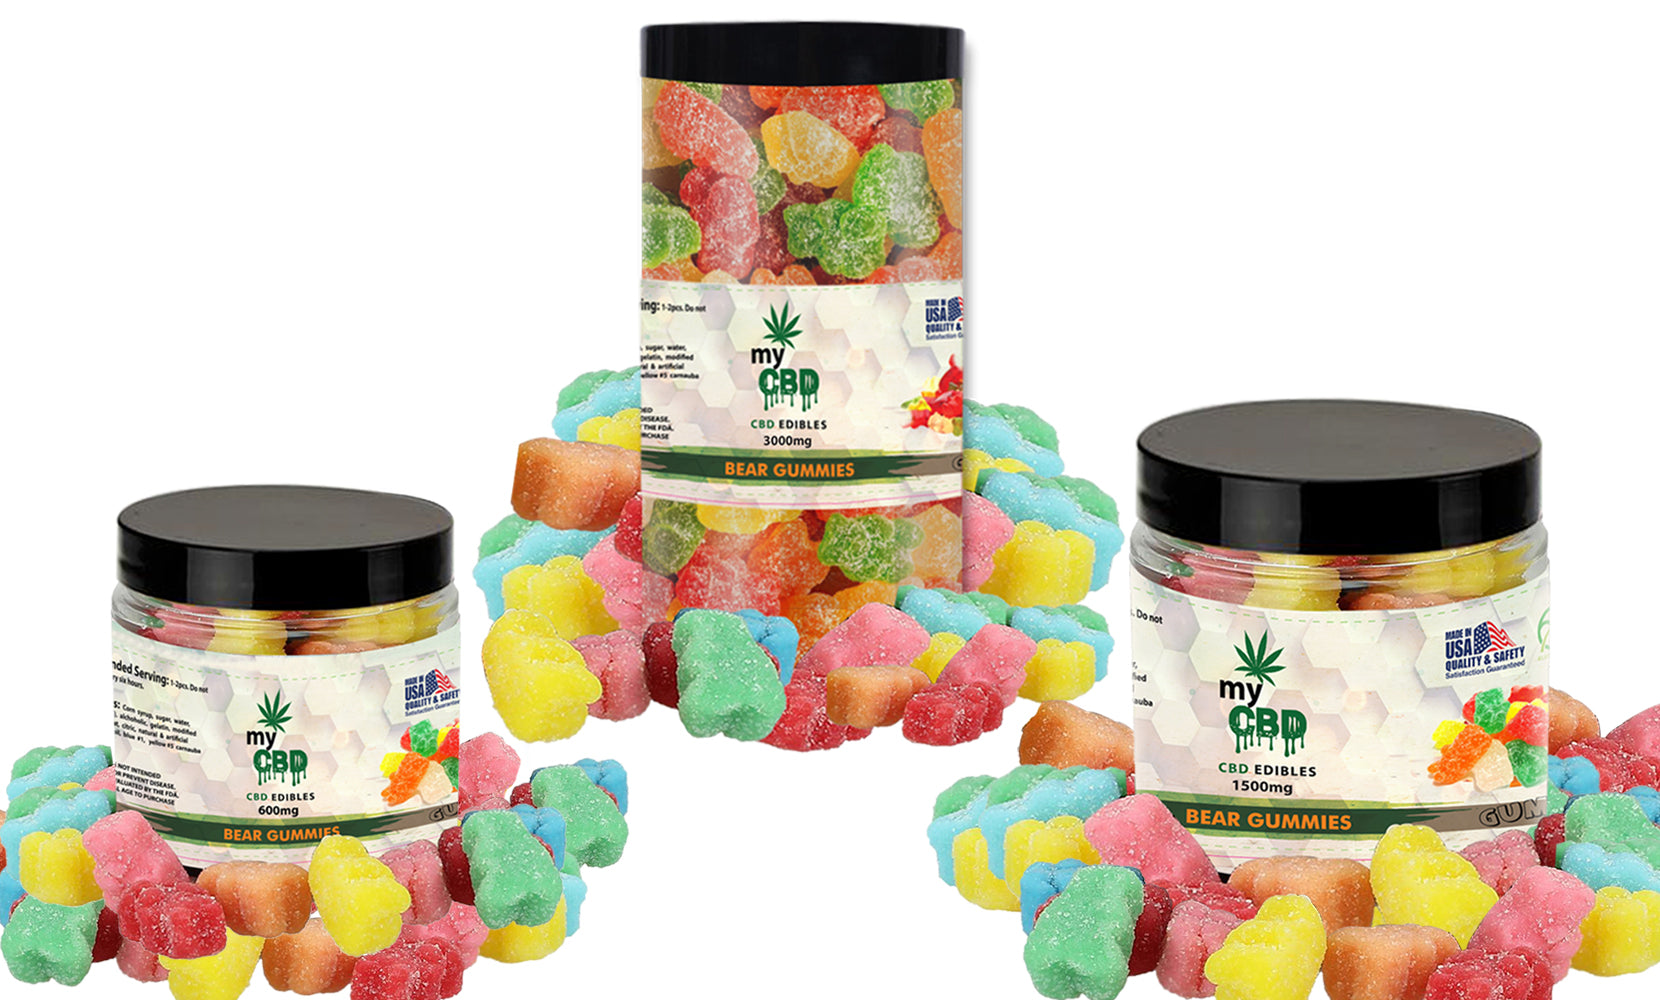 CBD Bear Gummies From myCBD (600mg, 1500mg or 3000mg)